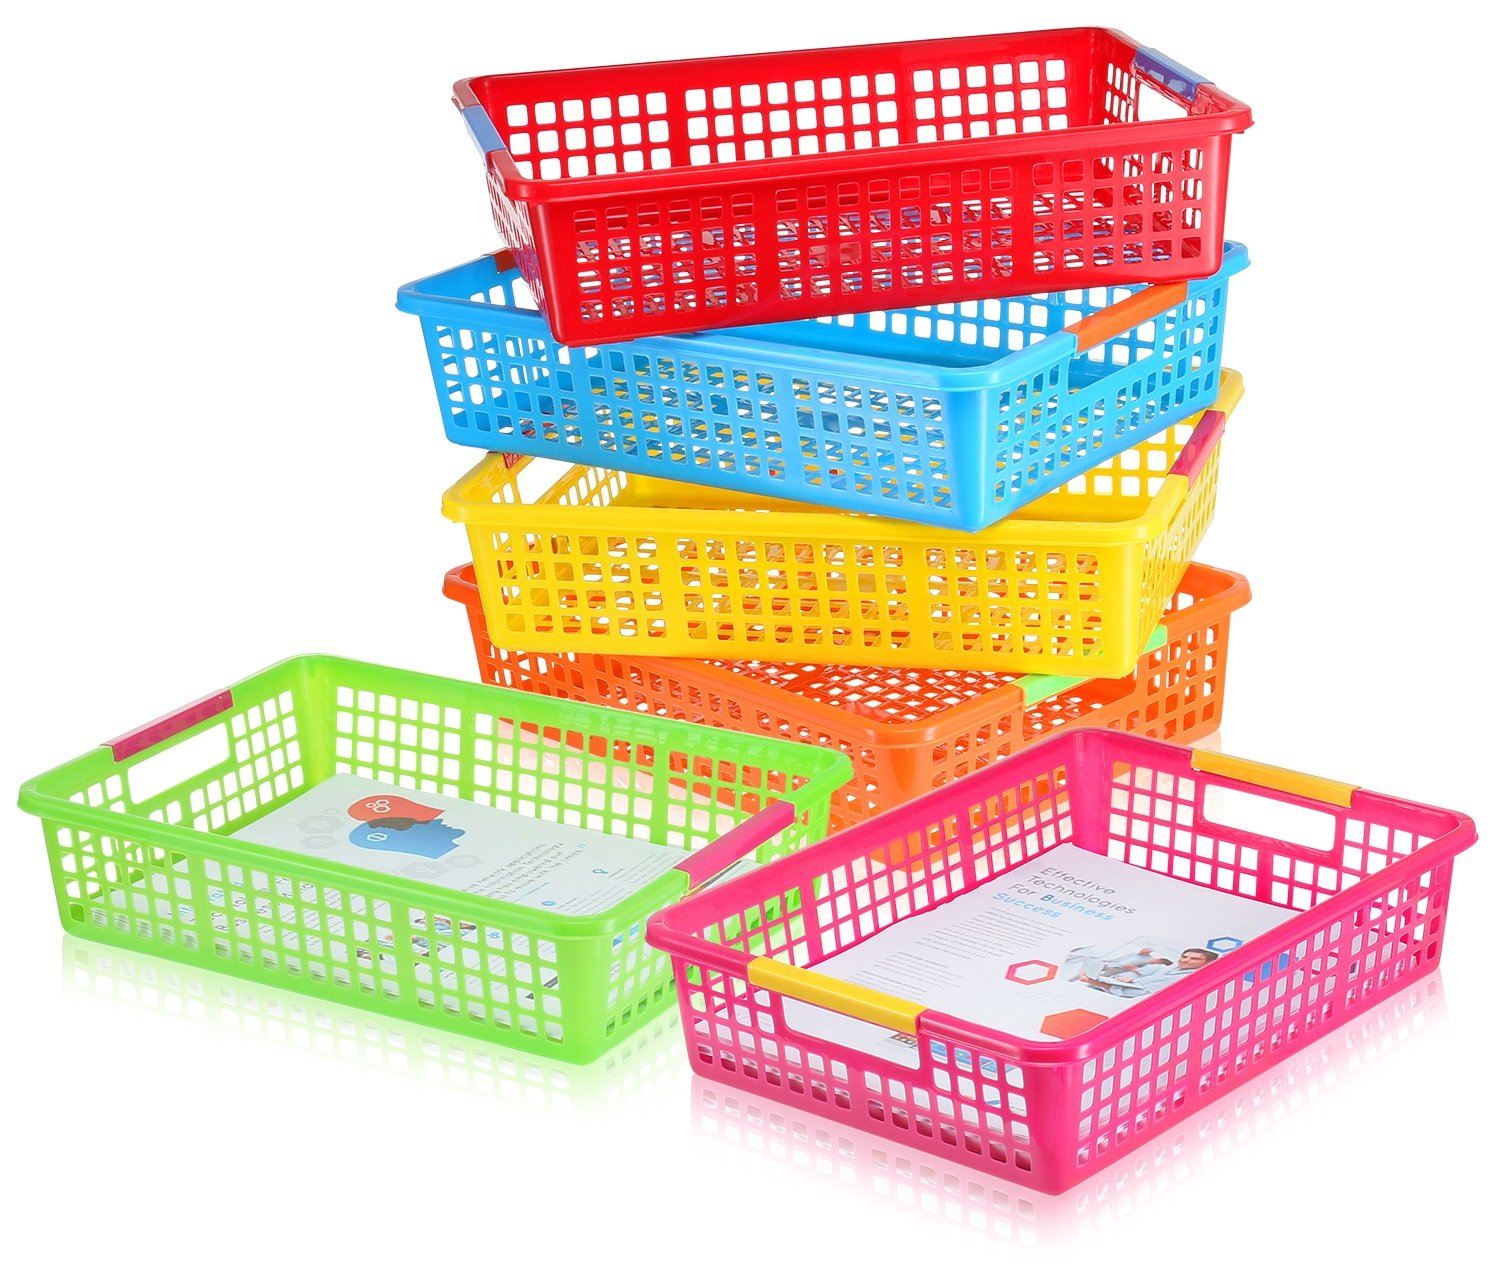 Zilpoo 6 Pack - Paper Organizer Basket, Classroom File Holder Colorful Plastic Bins, Teacher School Supplies Storage Baskets, Drawer Organization Trays with Handles, Colored by Zilpoo